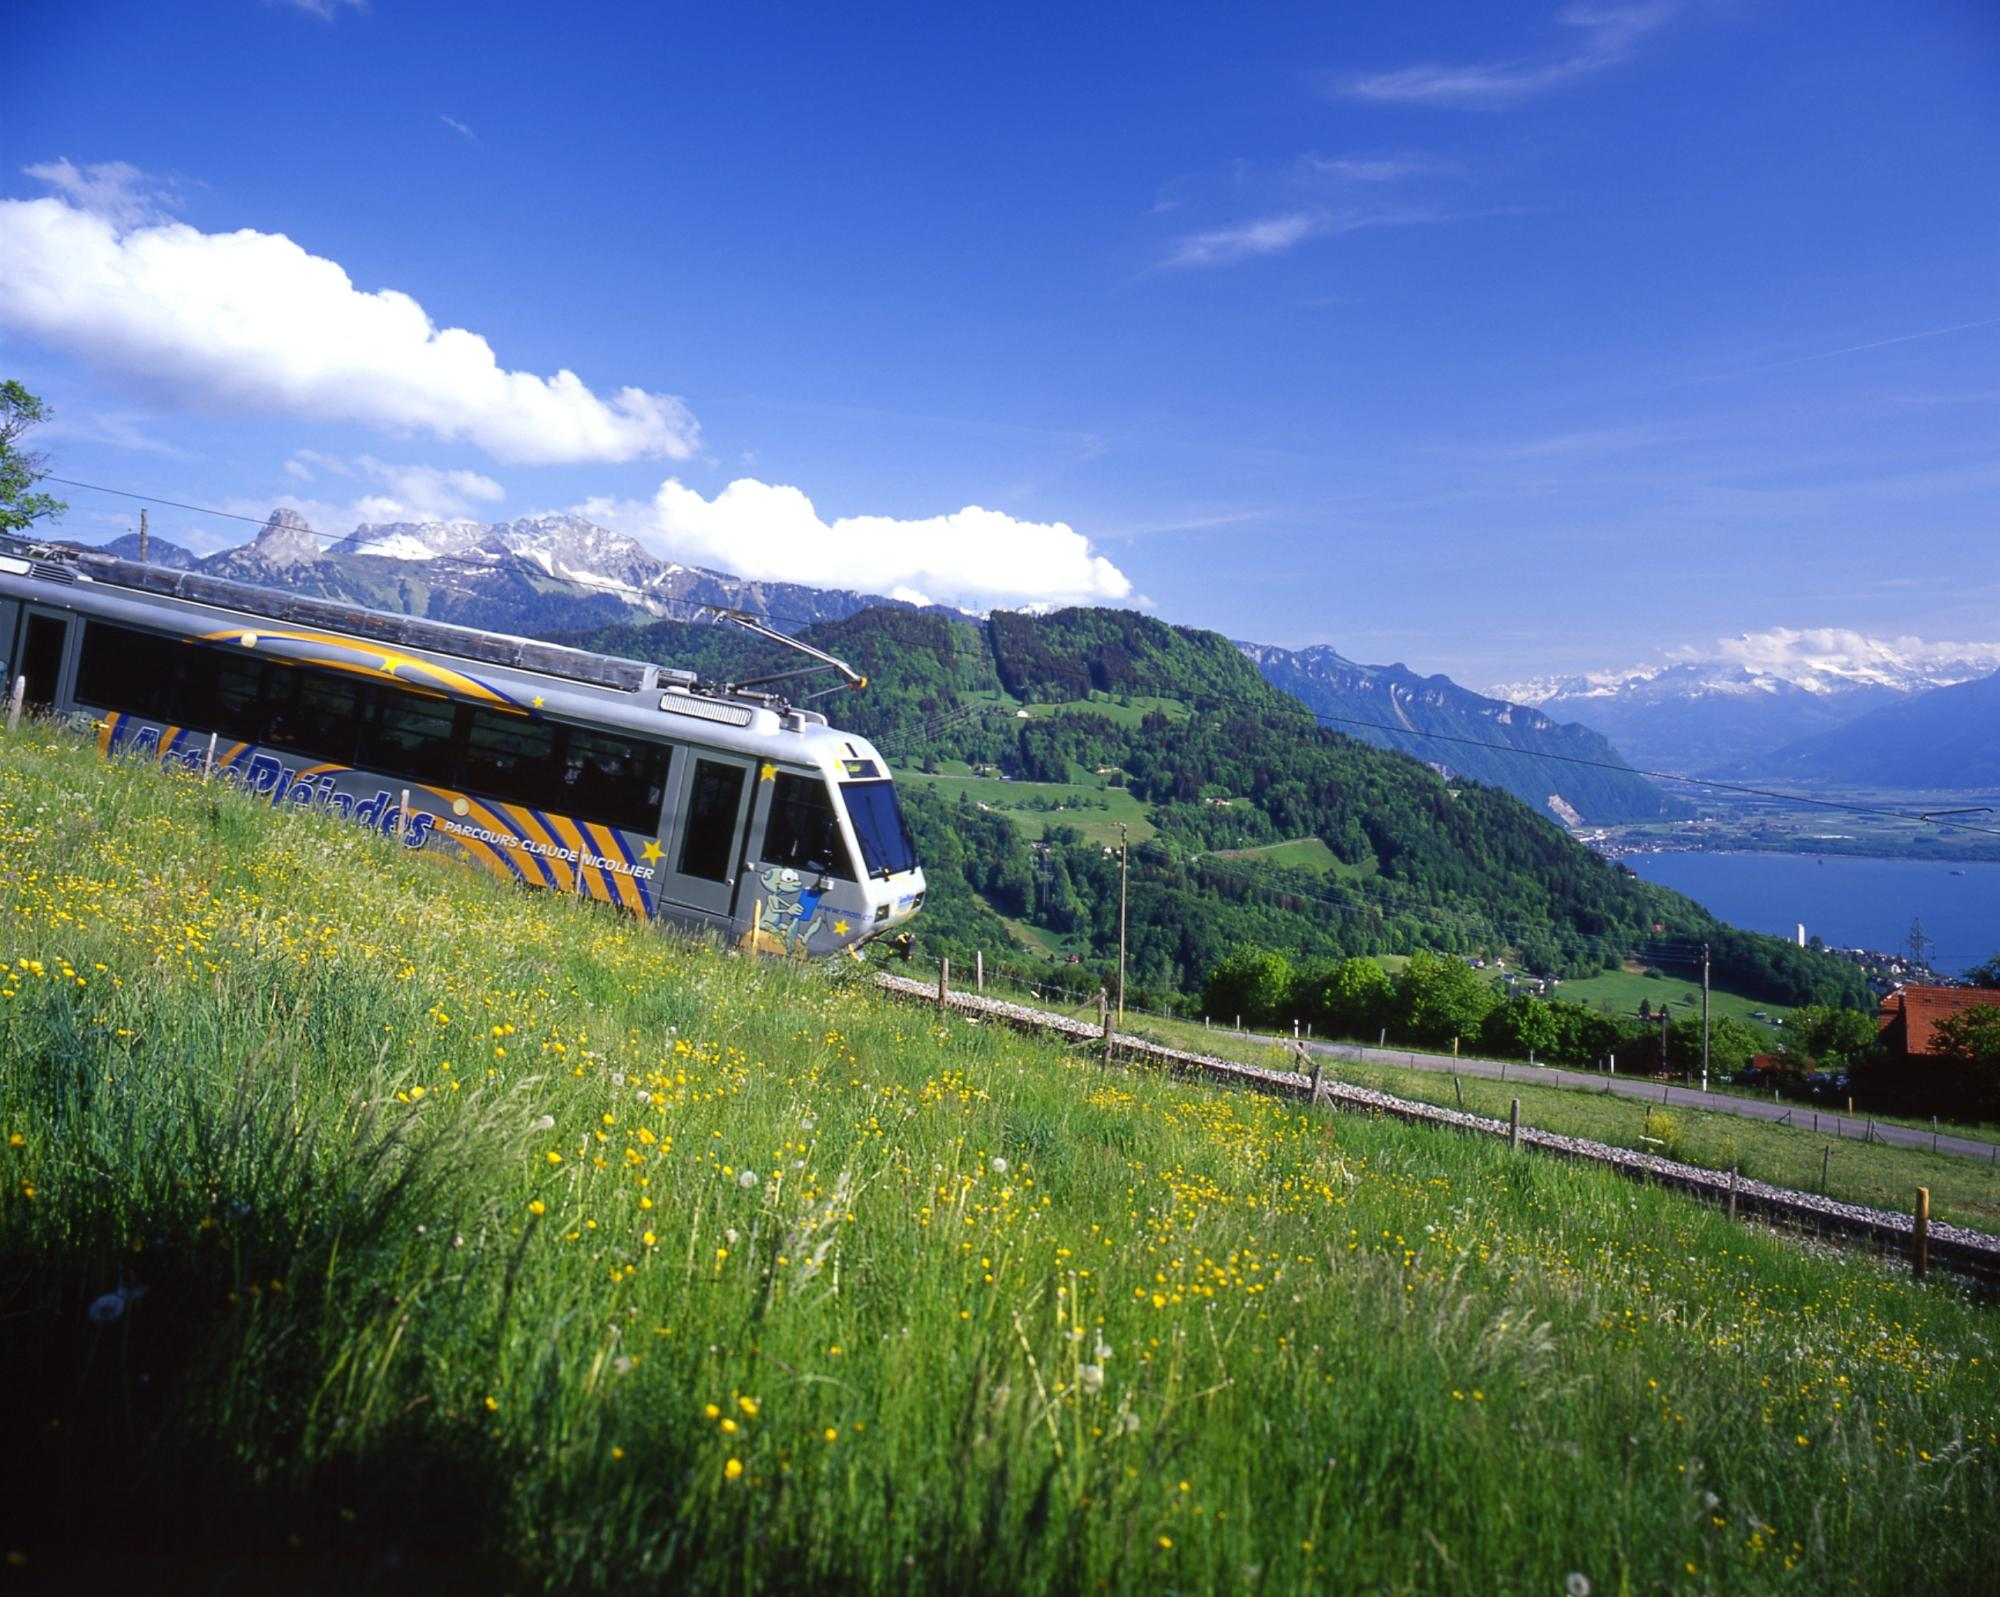 The Star Train, Vevey - Les Pléiades